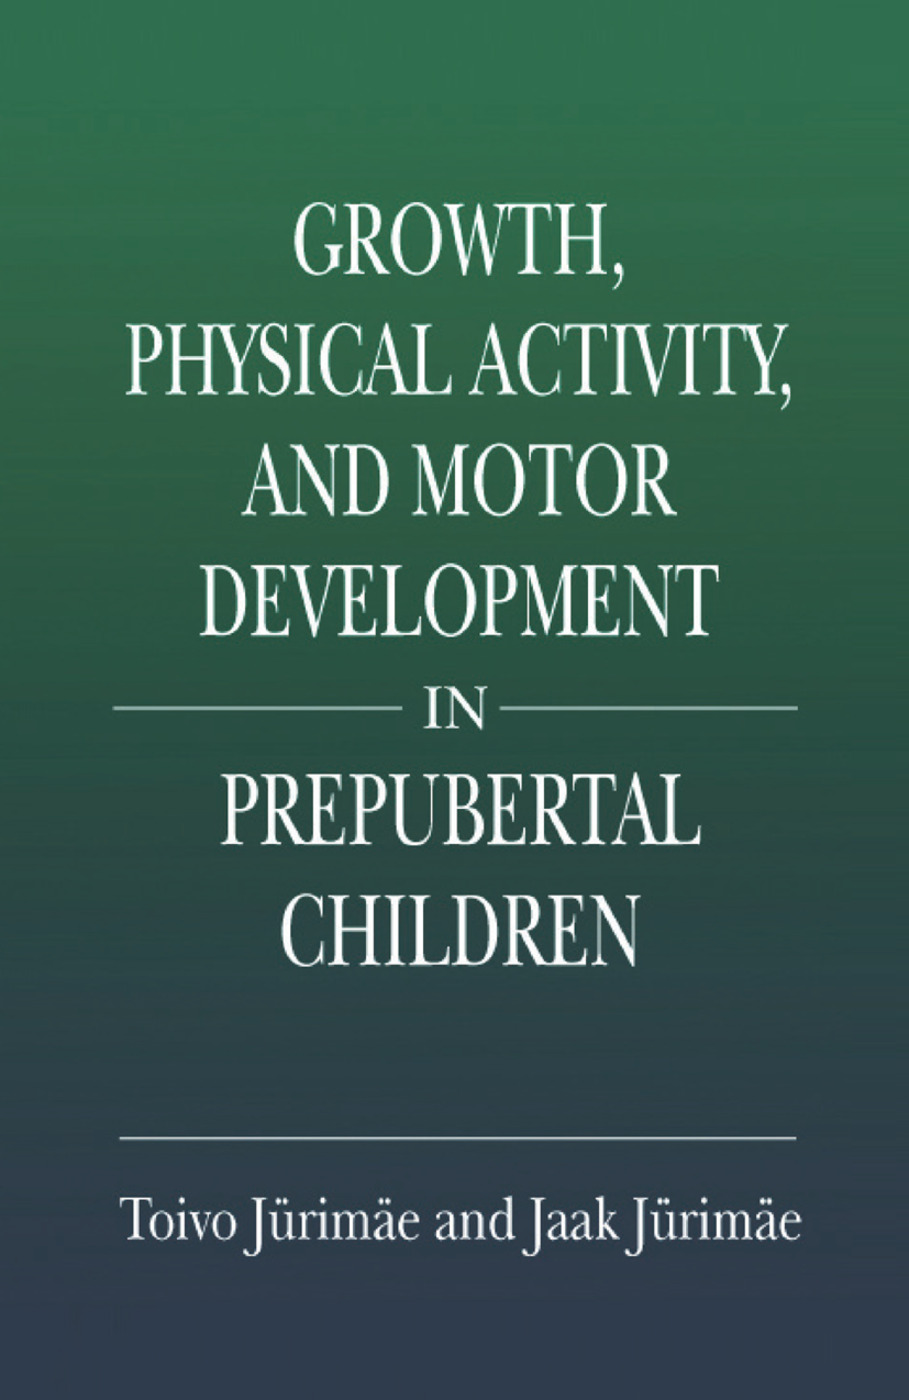 Growth, Physical Activity, and Motor Development in Prepubertal Children: 1st Edition (Paperback) book cover